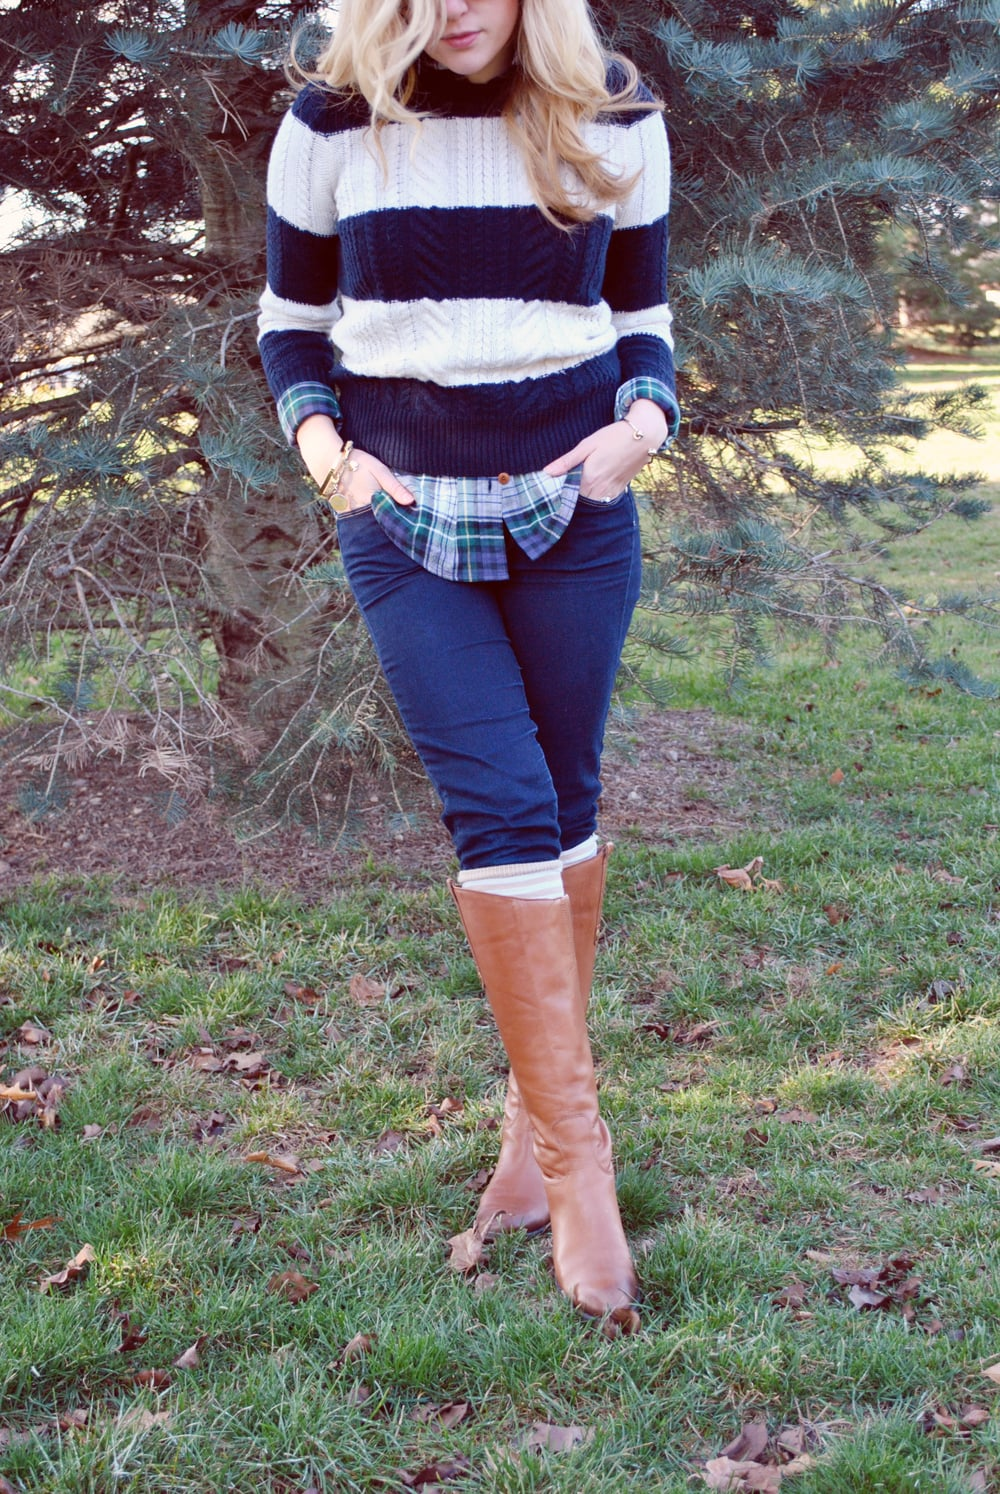 thoughtfulwish | boston fashion // new england fashion // j.crew // cashmere sweater // stripe sweater // stripes and plaid // winter outfit // spring outfit // meredith wish